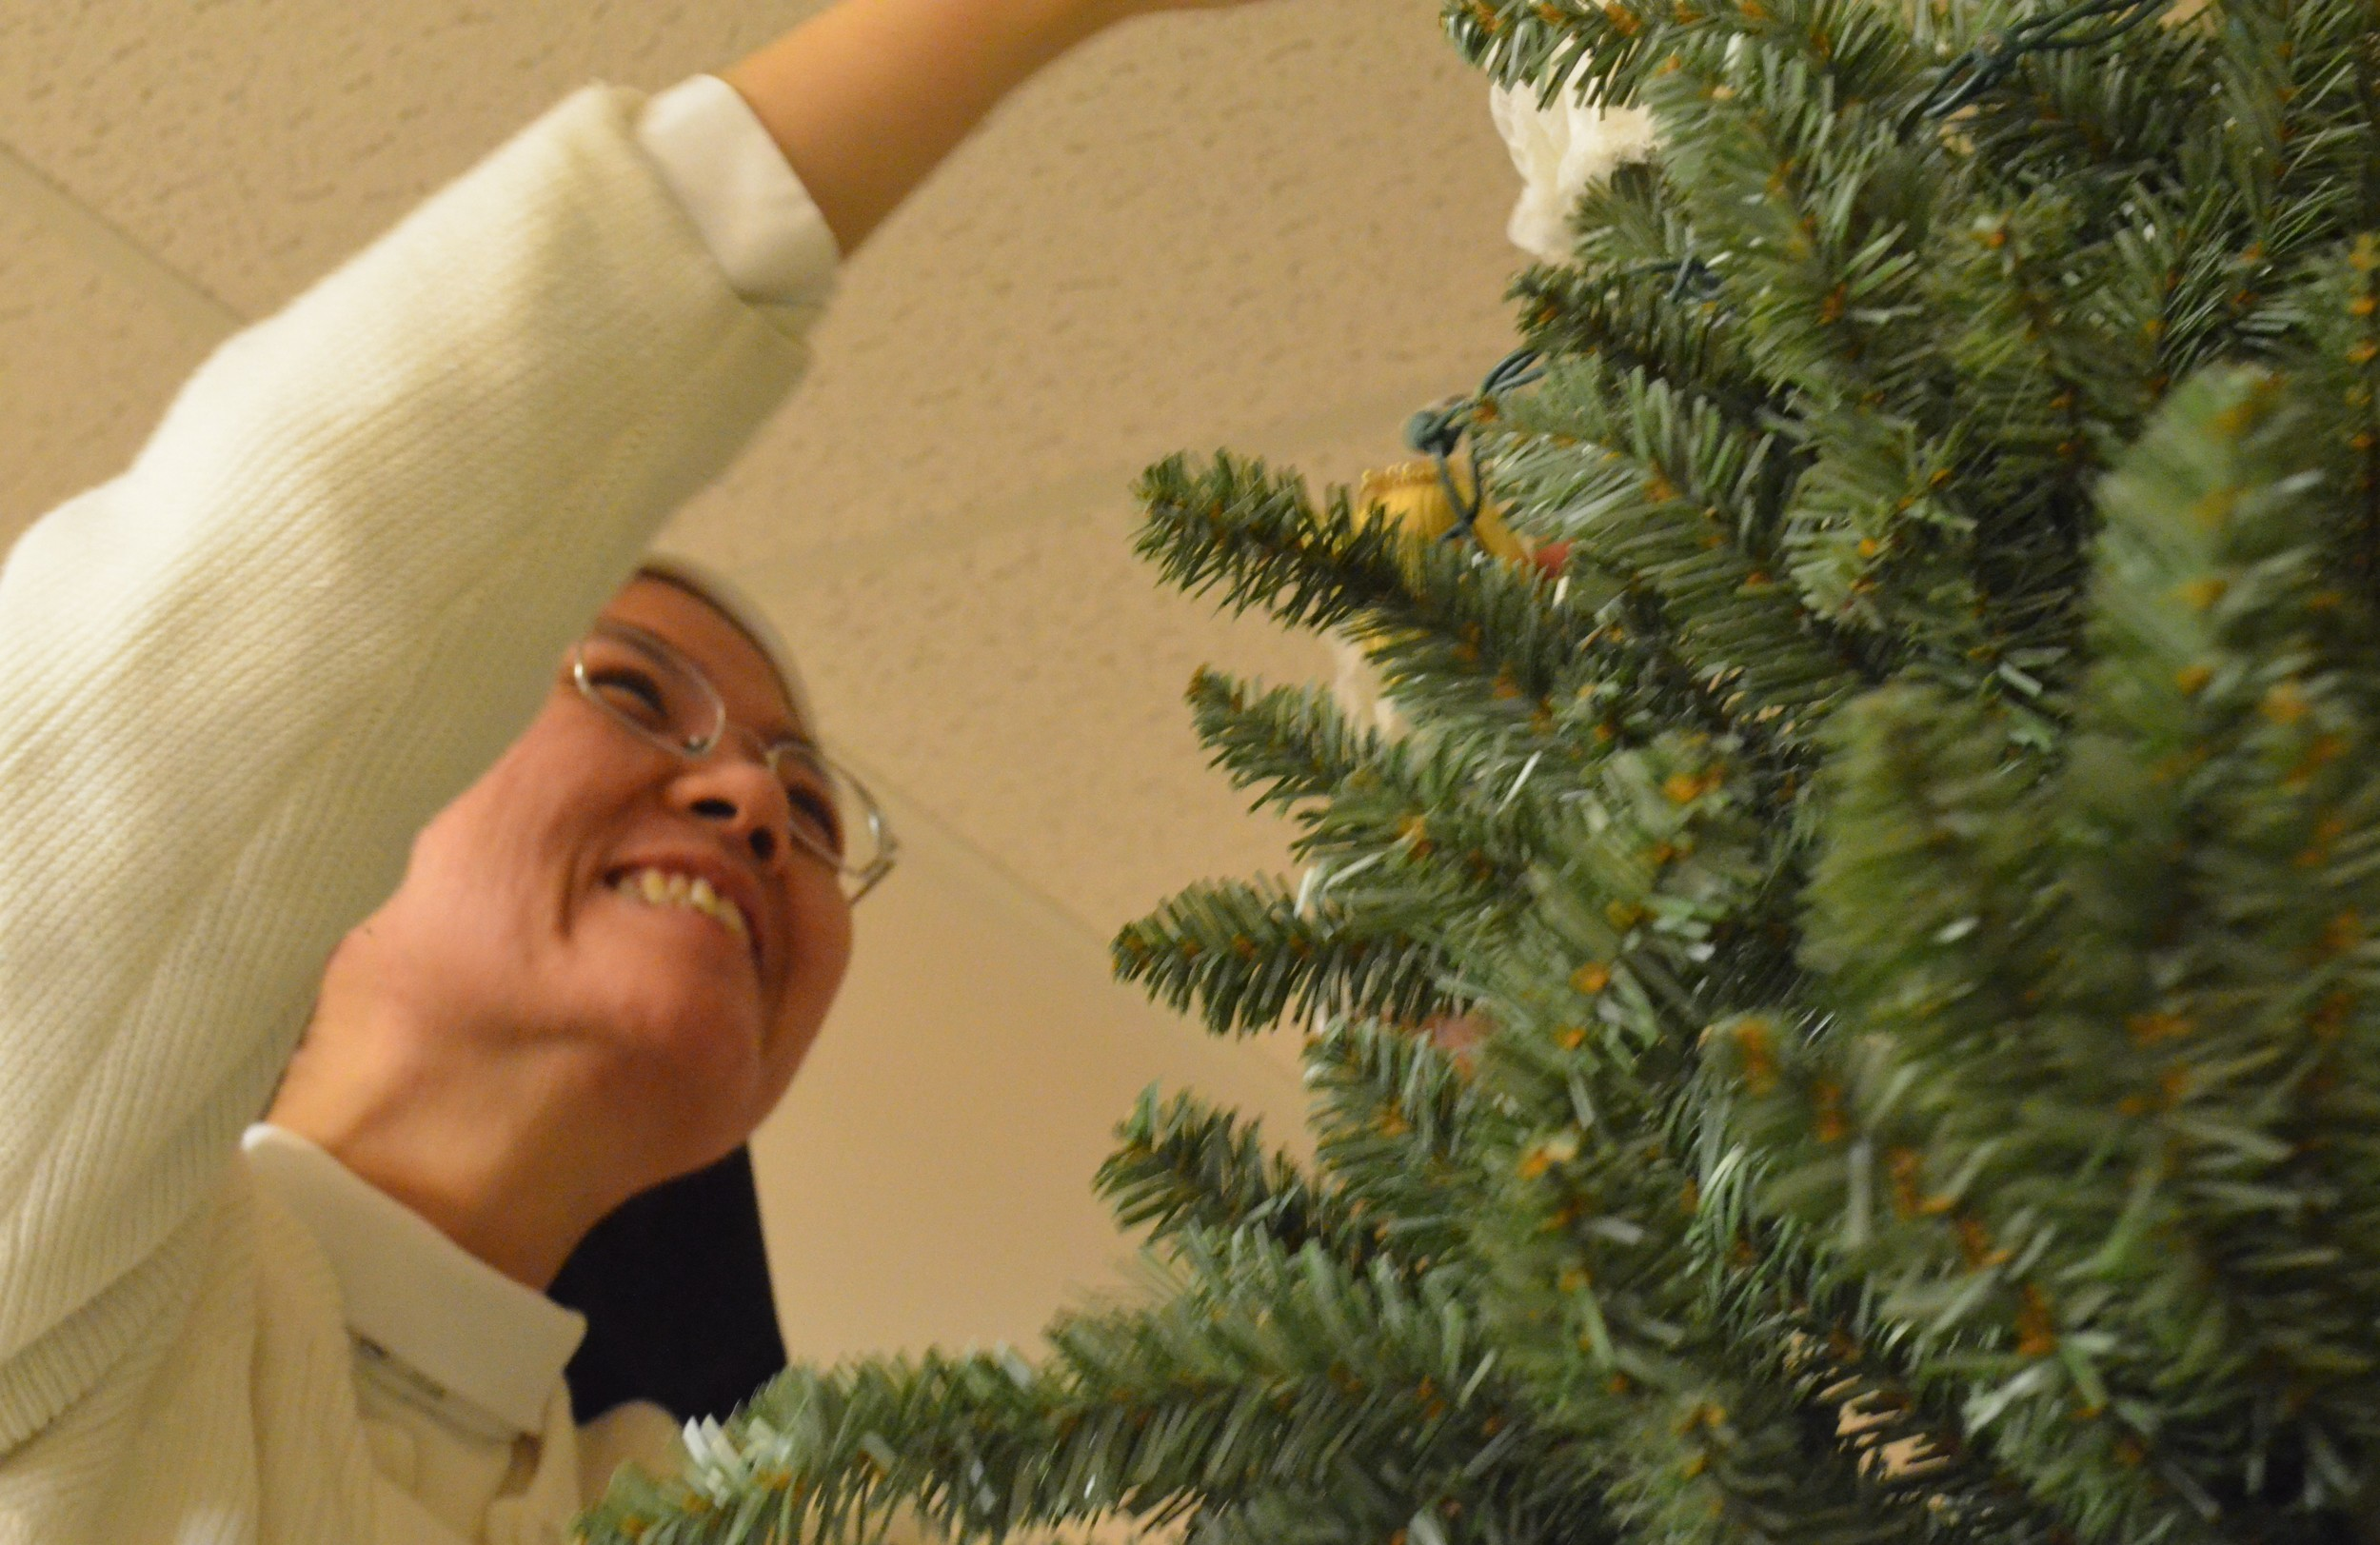 Then top the tree off with an angel of star! ...wait...what's so funny, Sr. Joseph Maria?